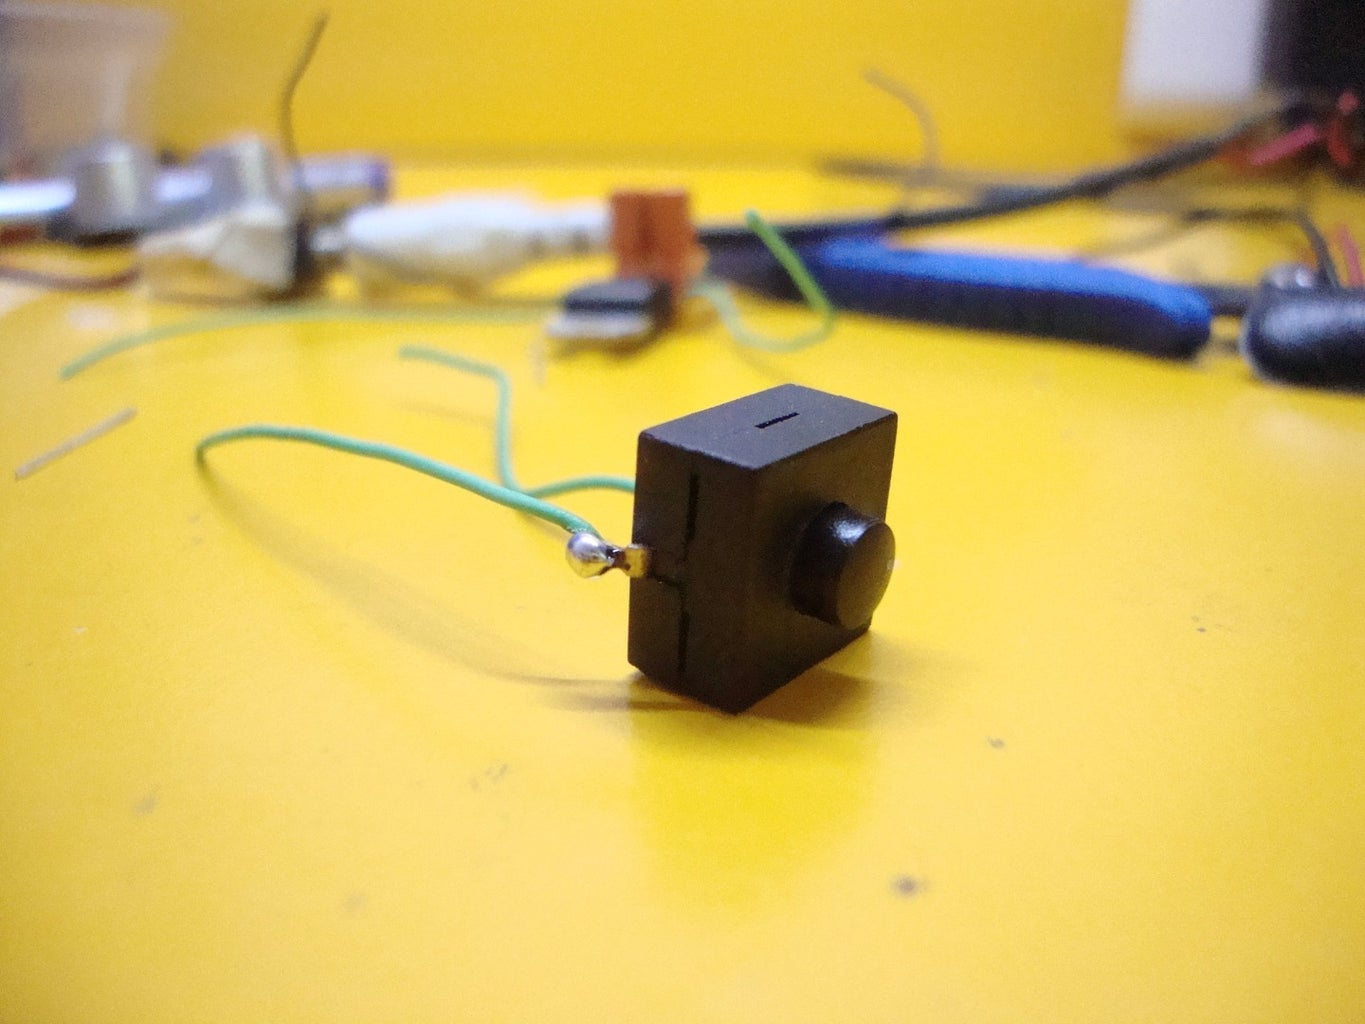 Making the Transmitter: Connect the Battery, Switch and Power Indicator LED